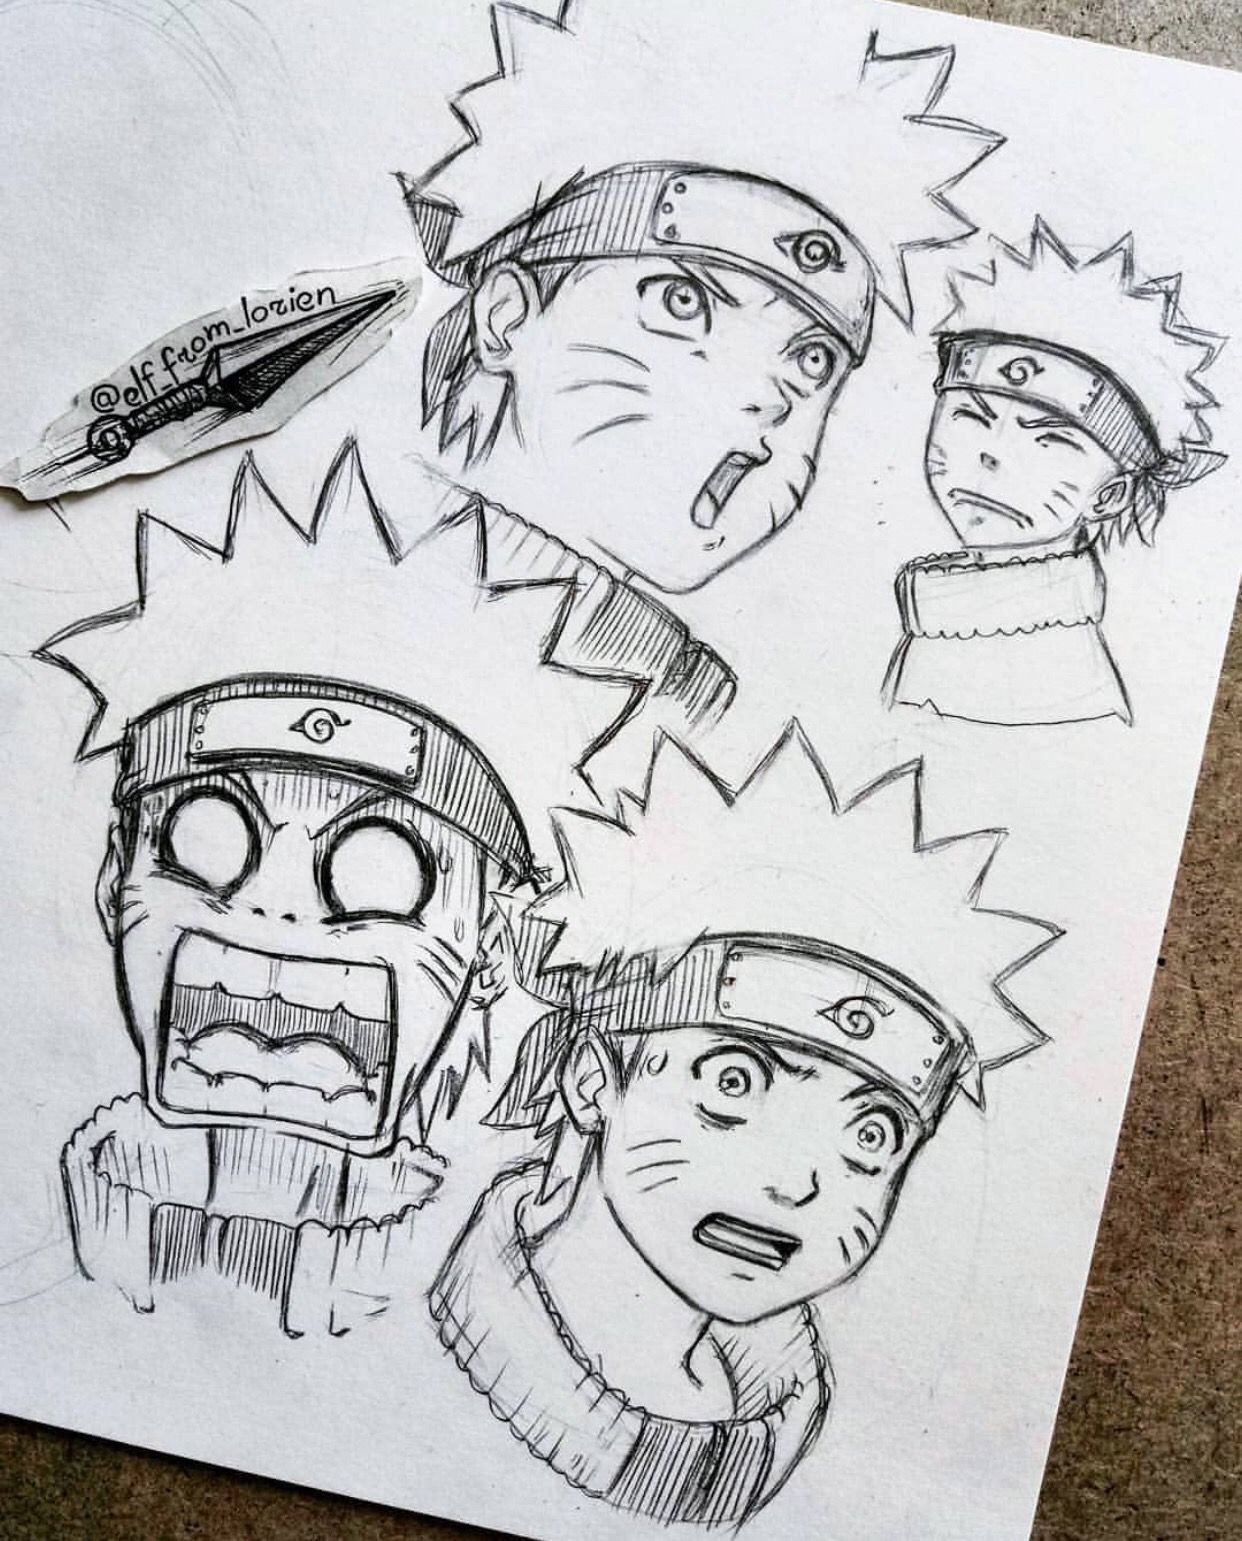 Naruto By Elf From Lorien Visit Our Website For More Anime And Animeart Narutoshipudden Don T Naruto Sketch Naruto Sketch Drawing Naruto Art